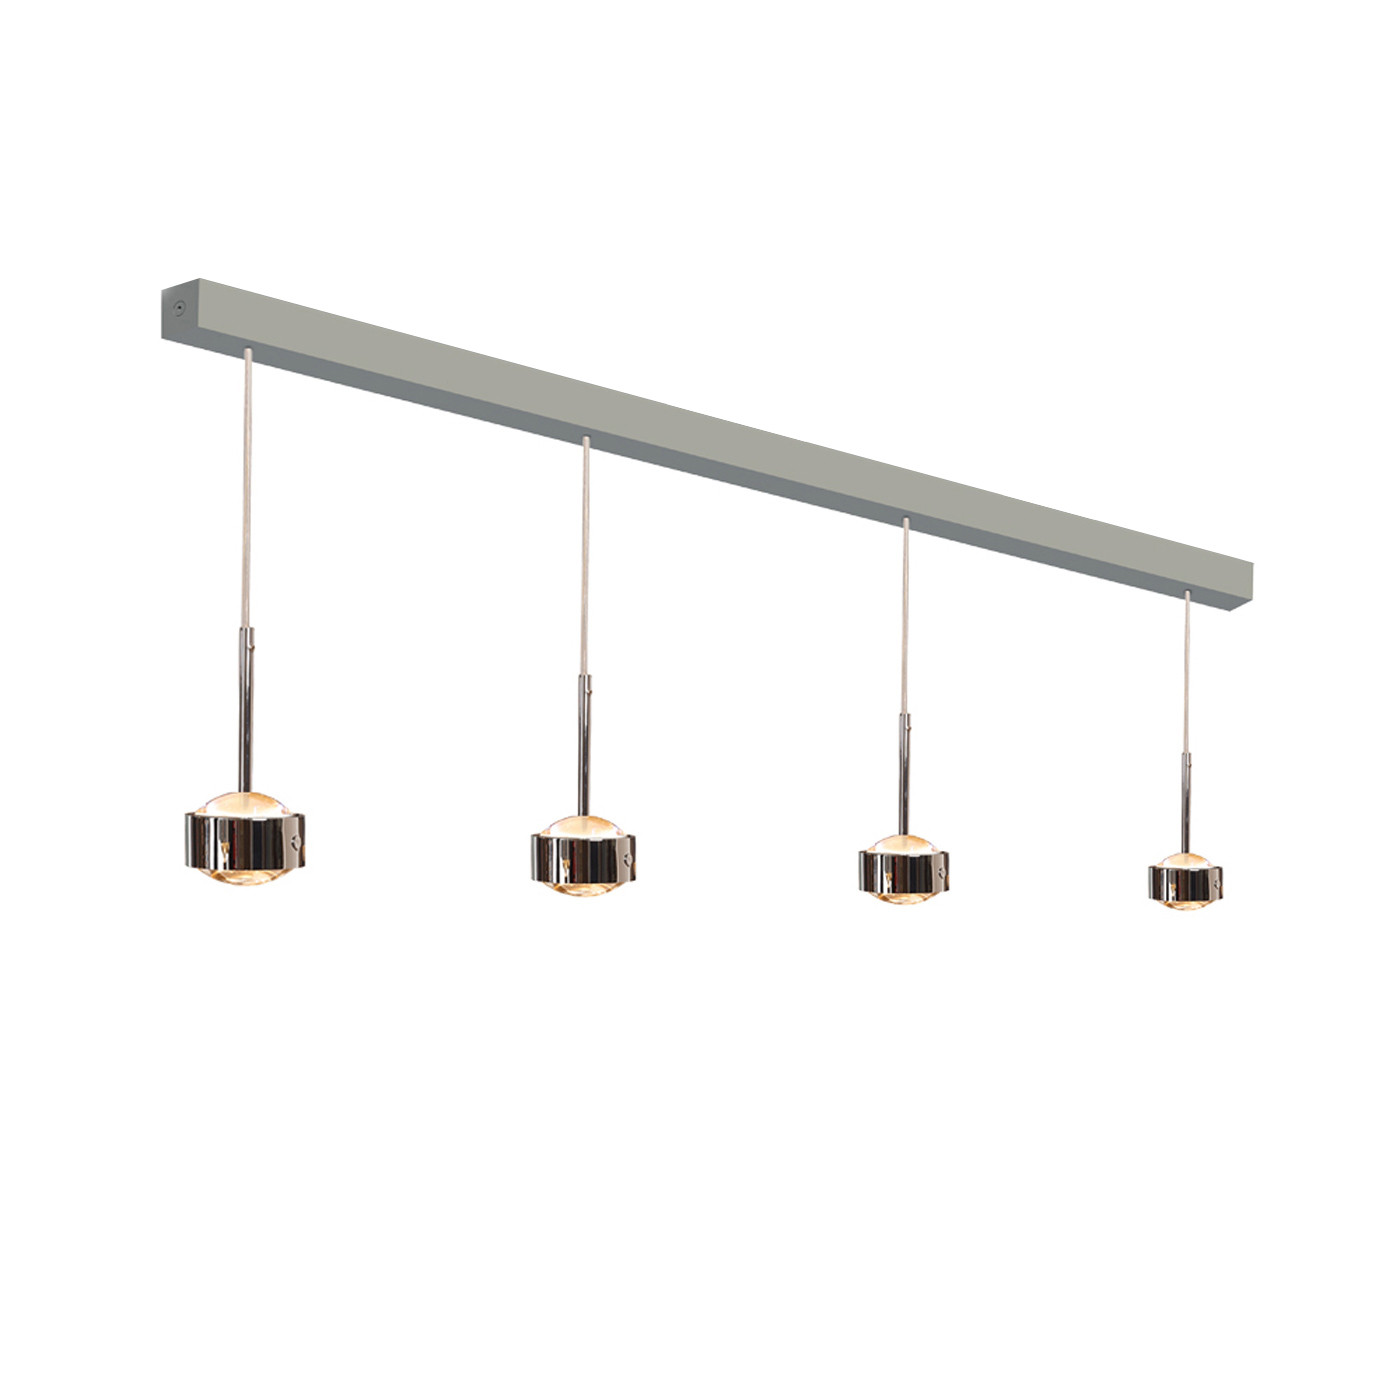 Top Light Puk Maxx Choice Drop 105 LED pendant lamp, with clear lenses